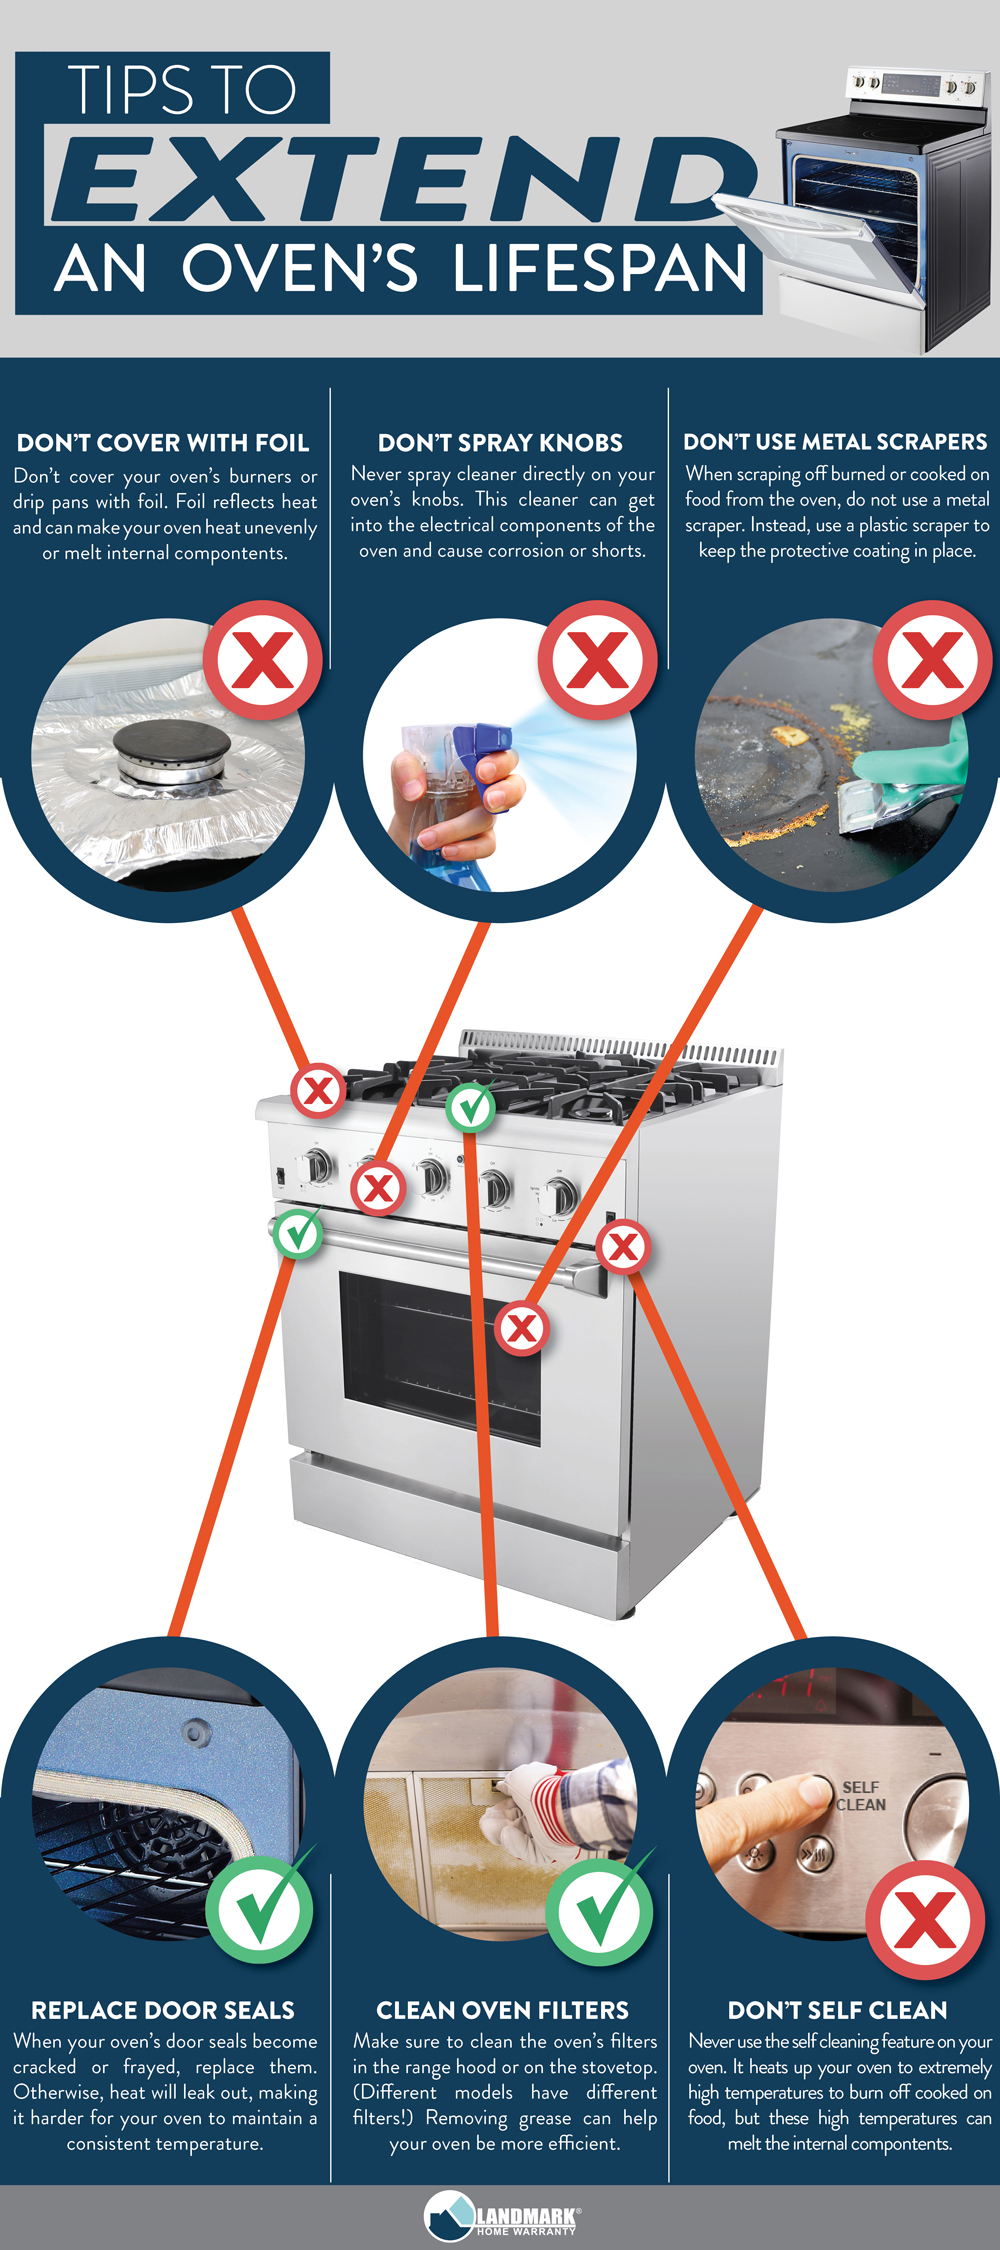 These tips will help your oven to run for its entire intended lifespan.